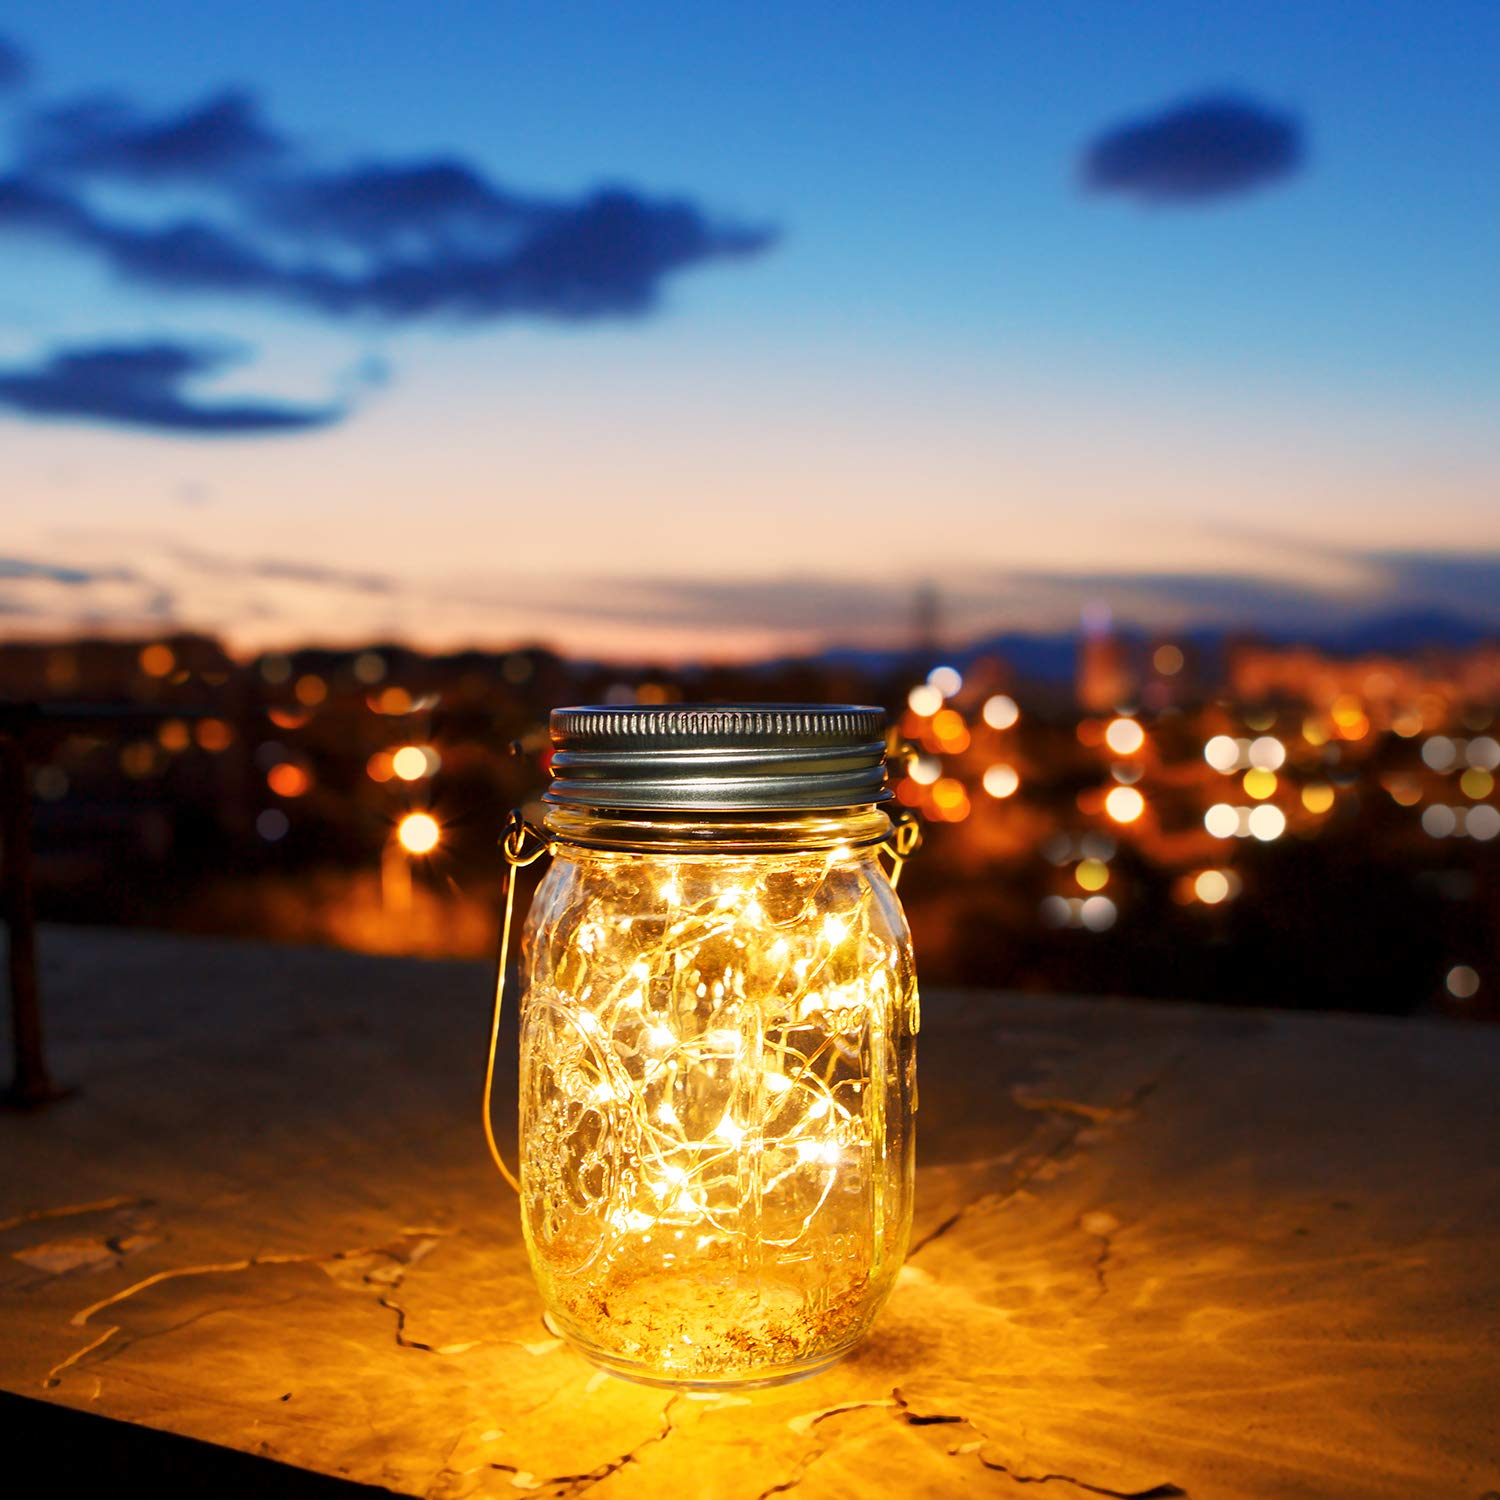 30 LED Solar Mason Jar Lights,Solar Garden Ornaments Outdoor,Solar Fairy Jars,Hanging Lanterns Light,Patio Path Lights Decoration Light,Gift and Decor for Christmas,Holiday,Ceremony Liyoung